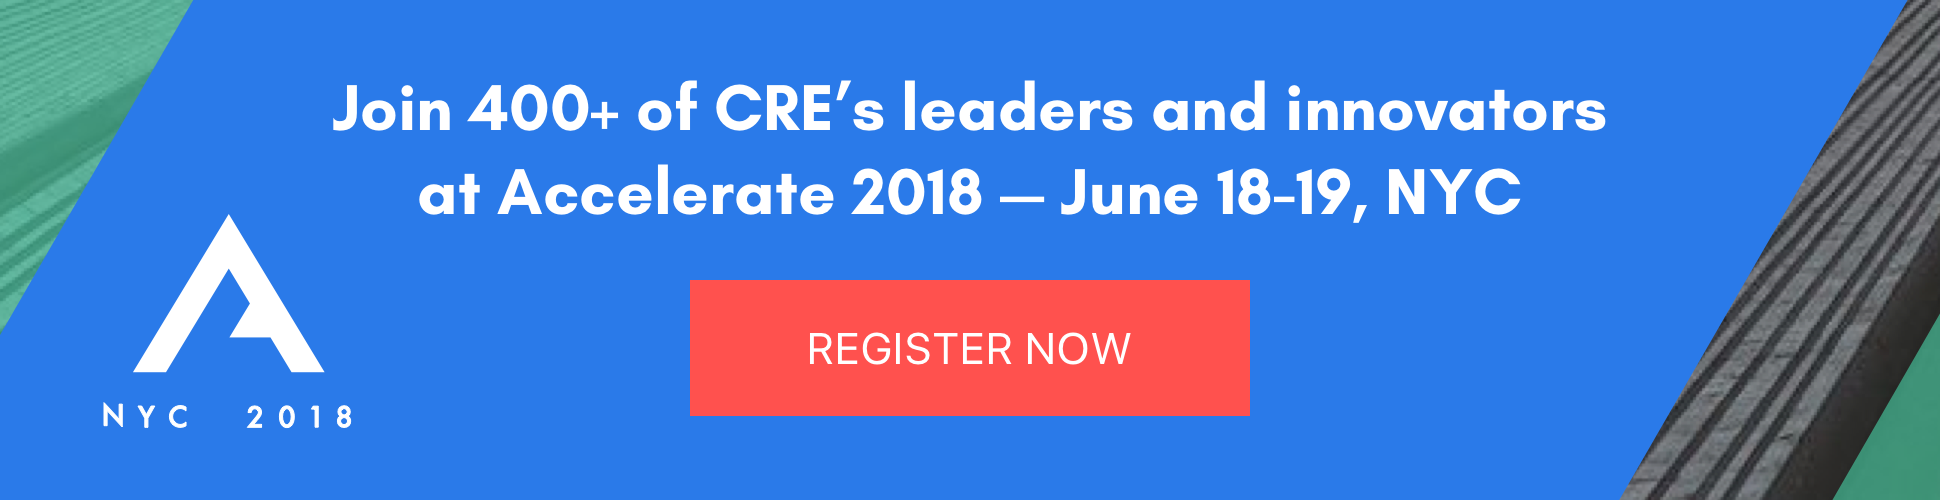 VTS Accelerate 2018: Register Now